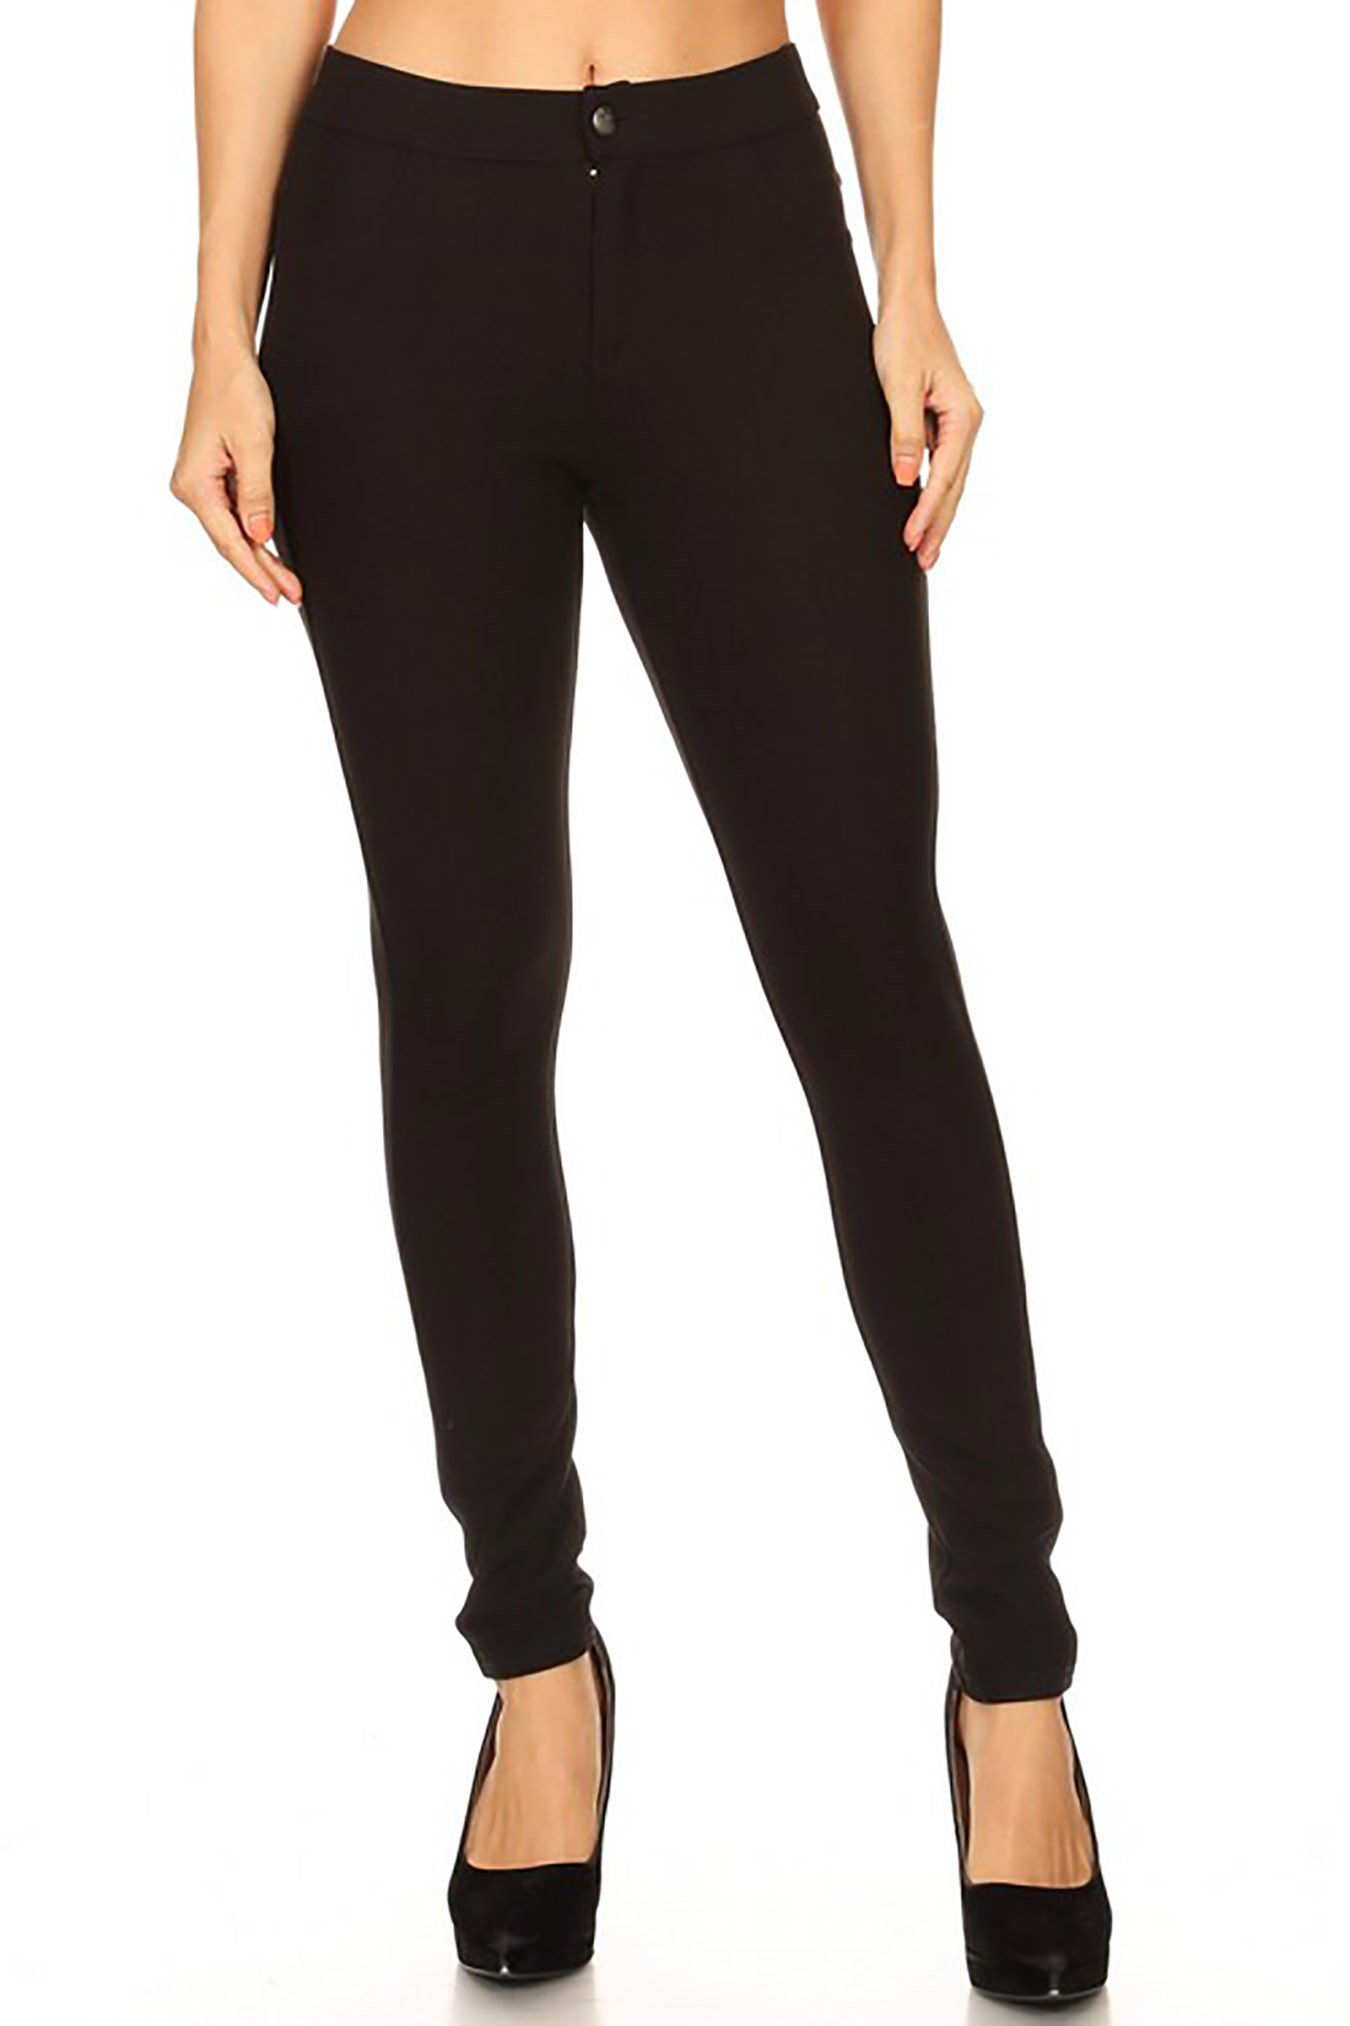 Women Pull-Up Style Casual Pants Jean Look Jeggings Slim Fit Wide Elastic Waistband and Zipper Spandex Leggings S-3XL (M, GT001-BLK)